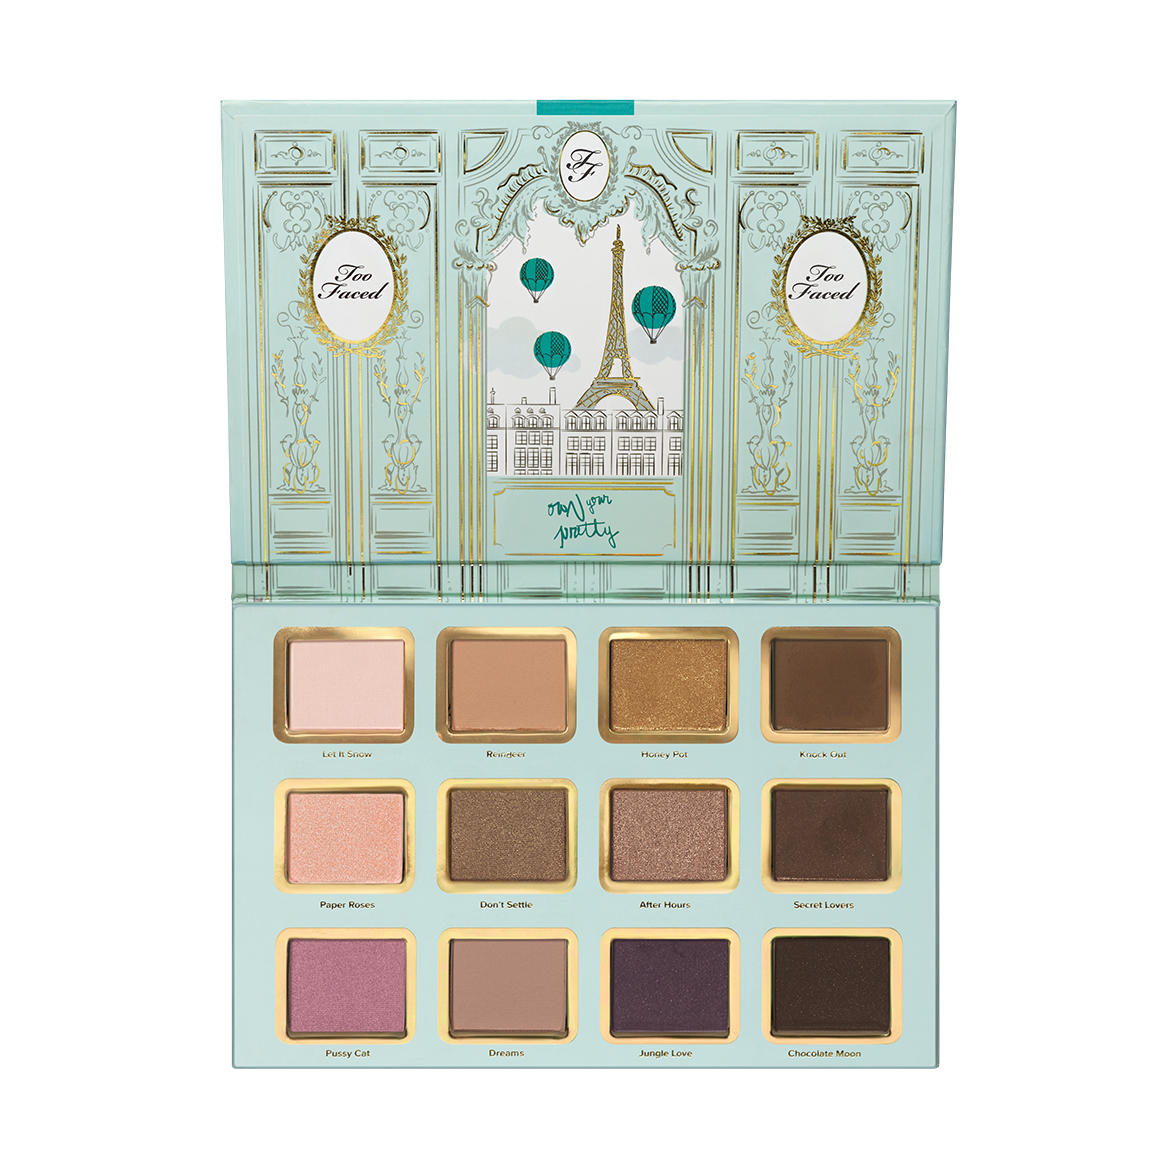 Too Faced Eyeshadow Palette La Petite Maison (Palette Only)